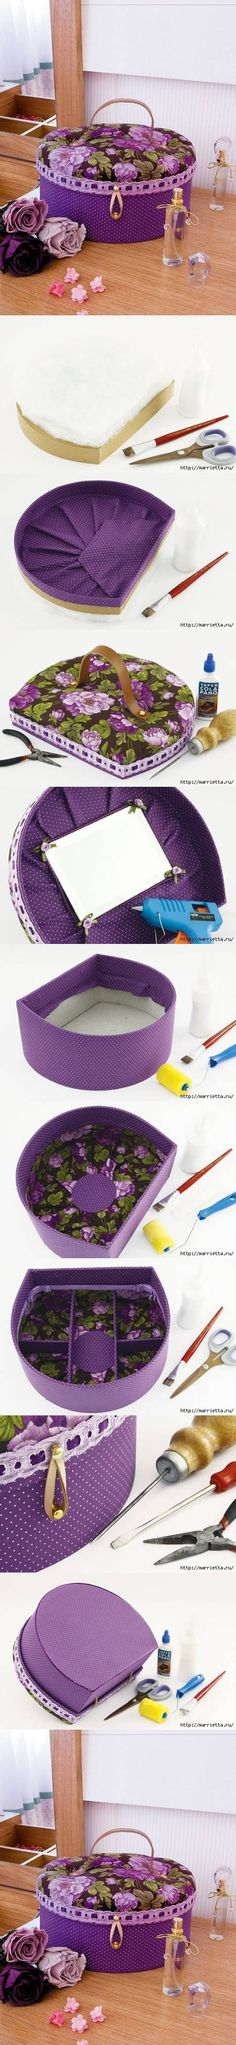 DIY Cute Makeup Box DIY Projects | UsefulDIY.com